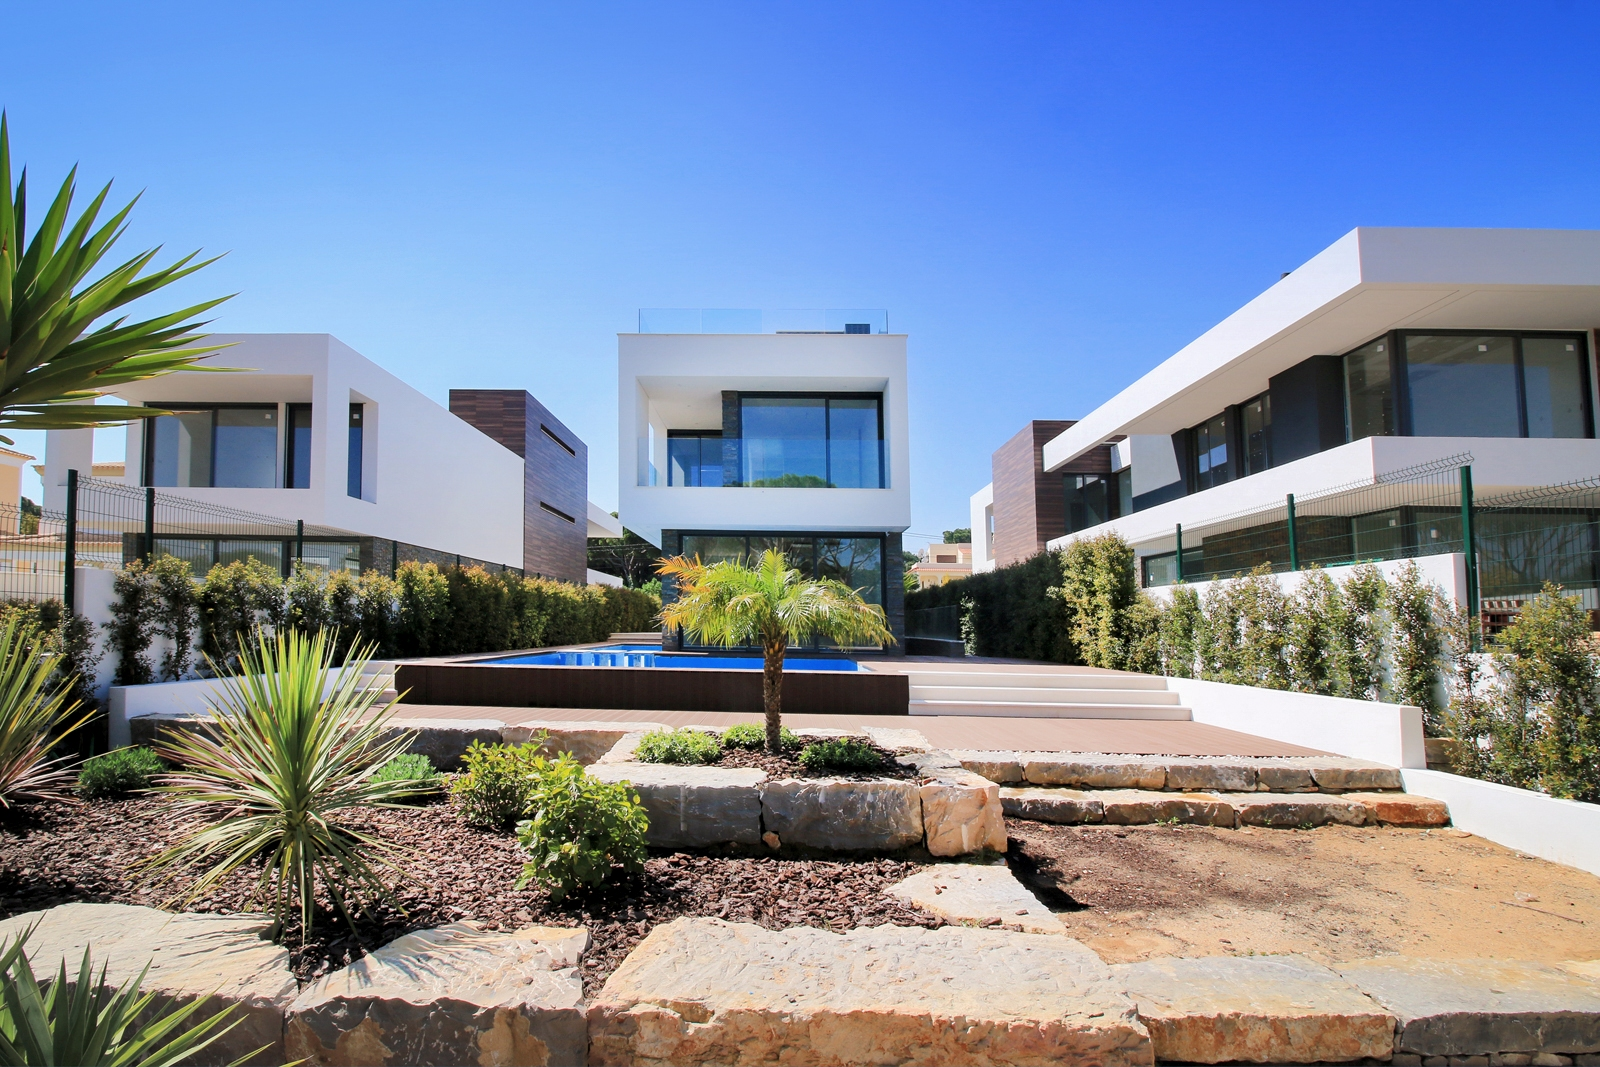 Contemporary 5 Bedroom Villa near Falésia Beach, Albufeira | VM906 Modern 5 bedroom villa with pool, close to Falésia beach. It has a basement and a big living area. Great location, close to amenities, beaches and golf.